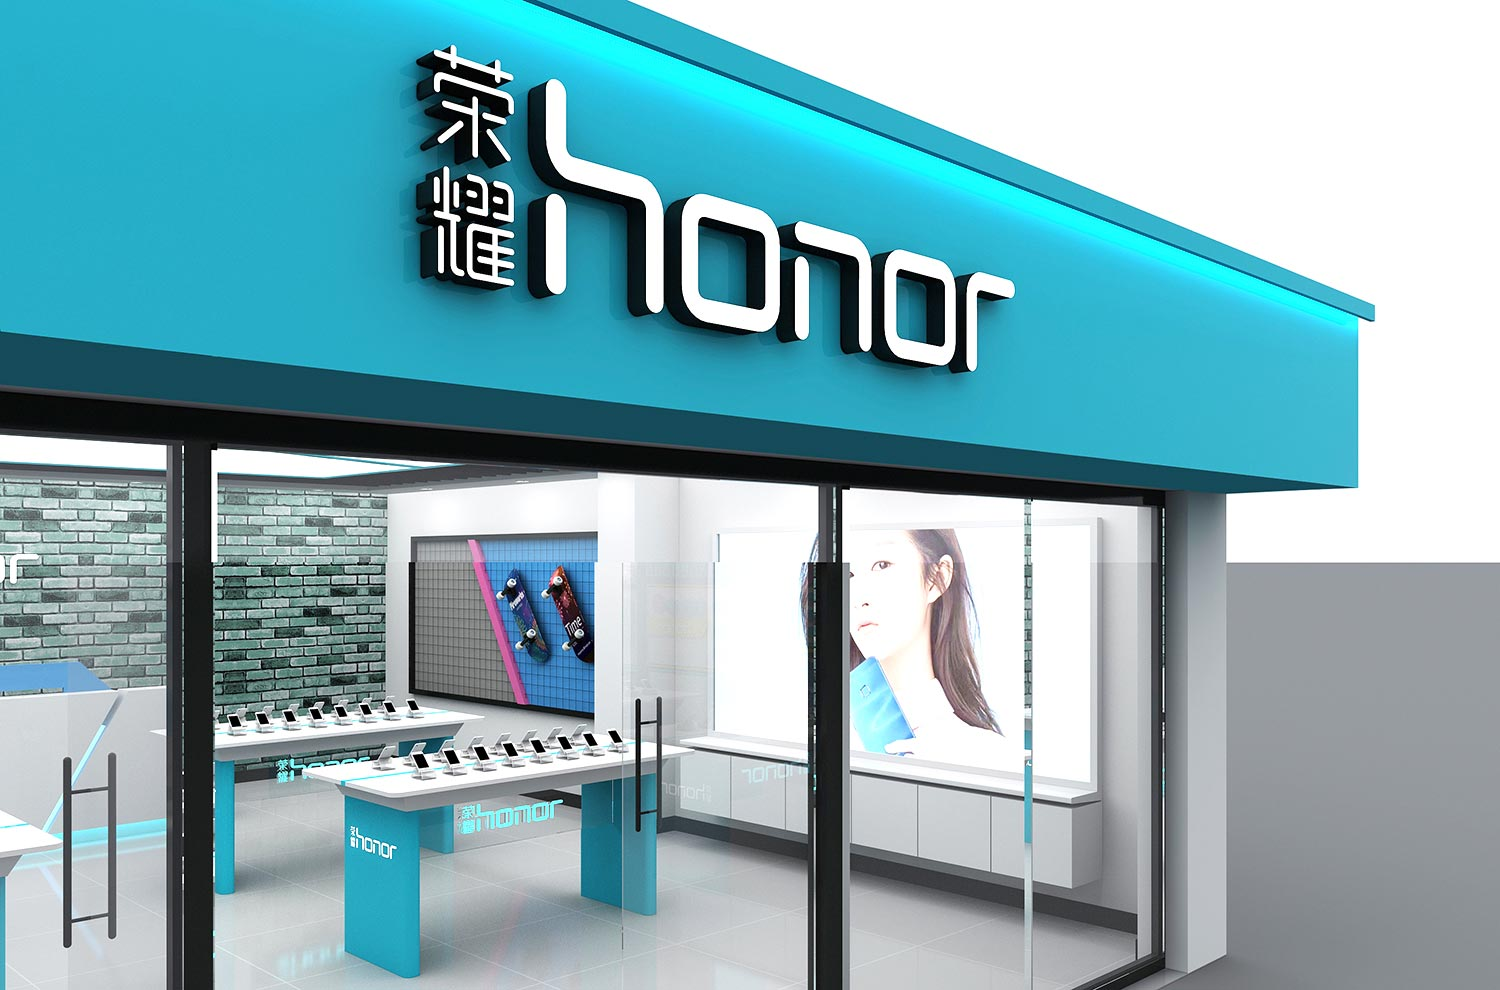 Honor Cell Phone Store Design